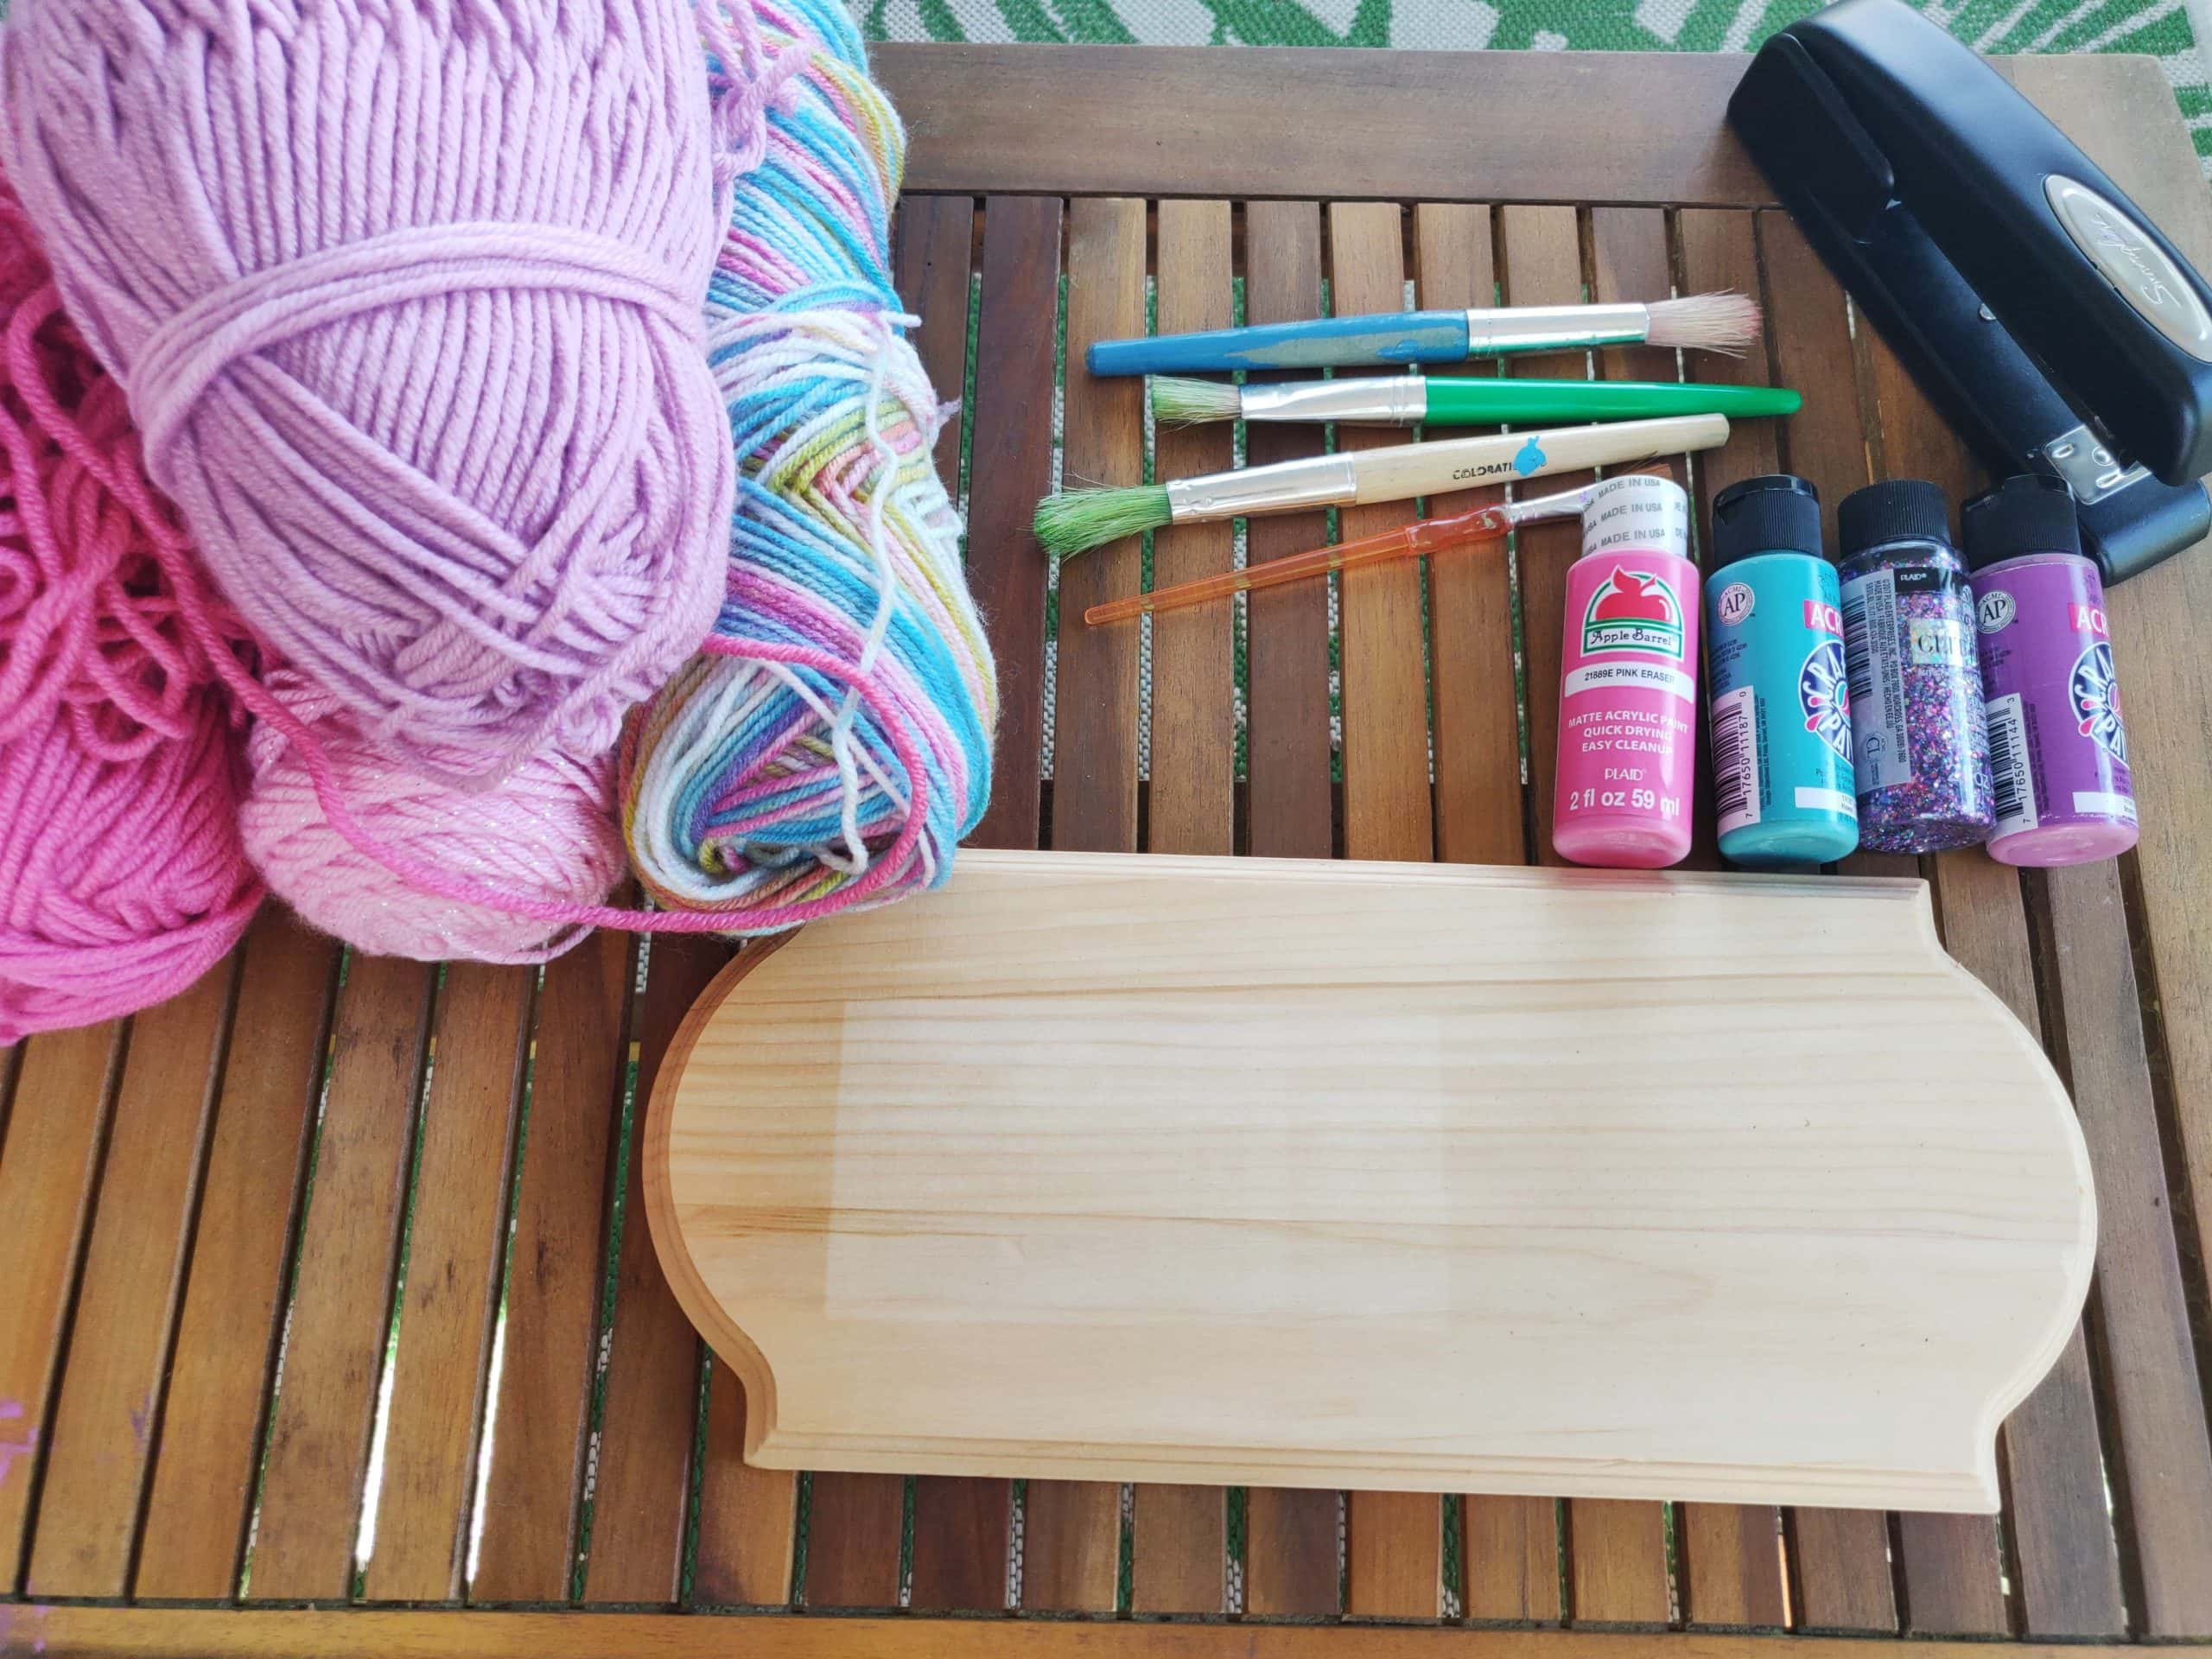 Supplies to make a diy bow holder with yarn